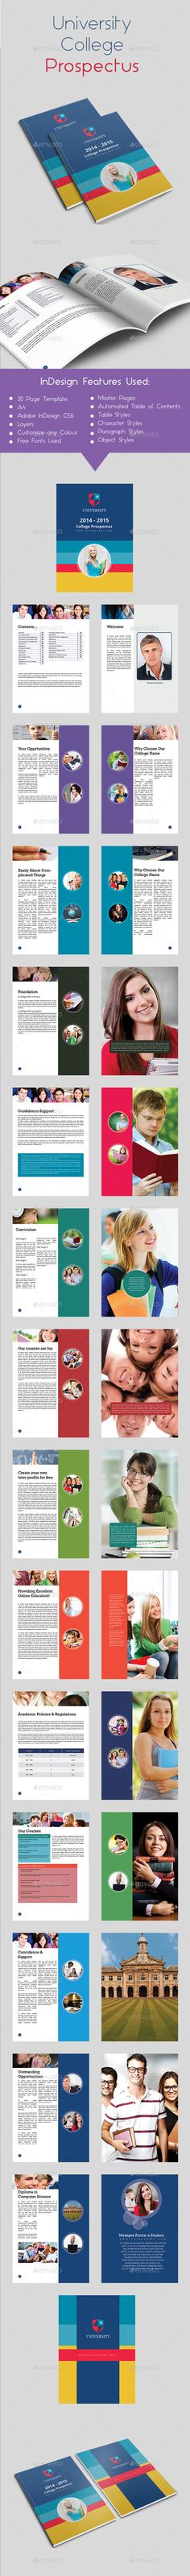 College University Prospectus Brochure V4 | Brochure Template